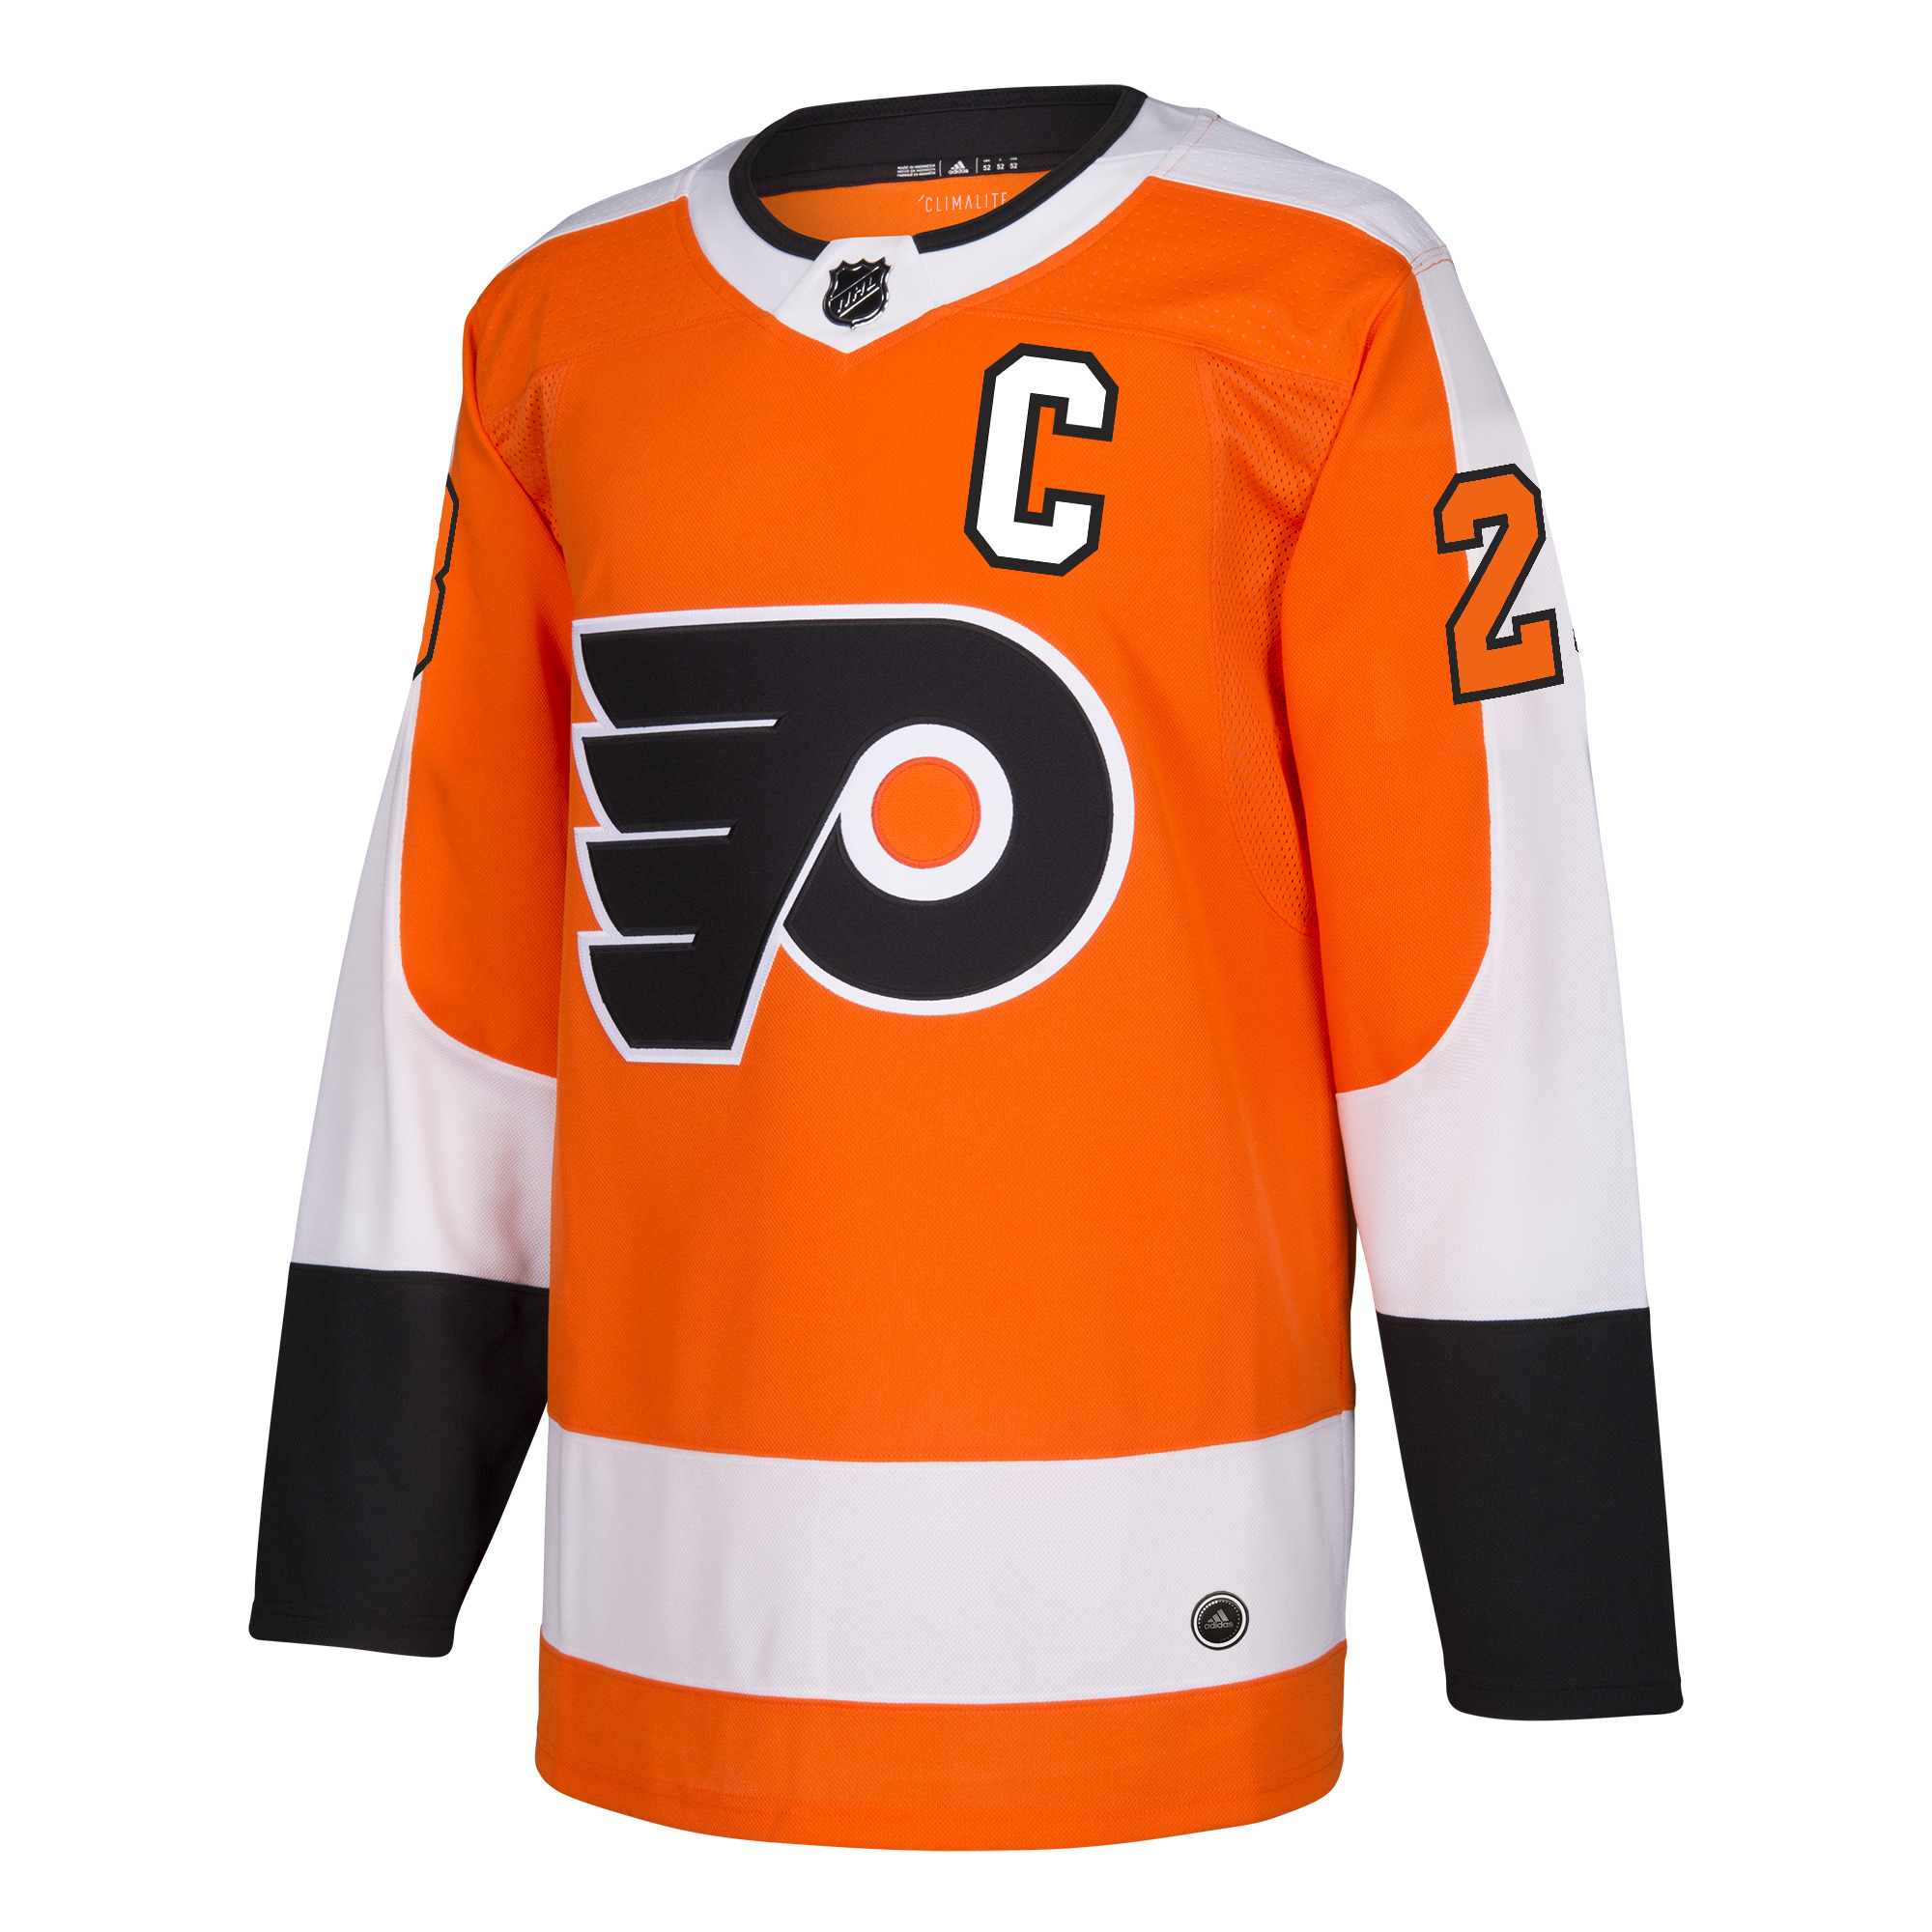 Claude Giroux Philadelphia Flyers Adidas NHL Men's Authentic Orange Jersey